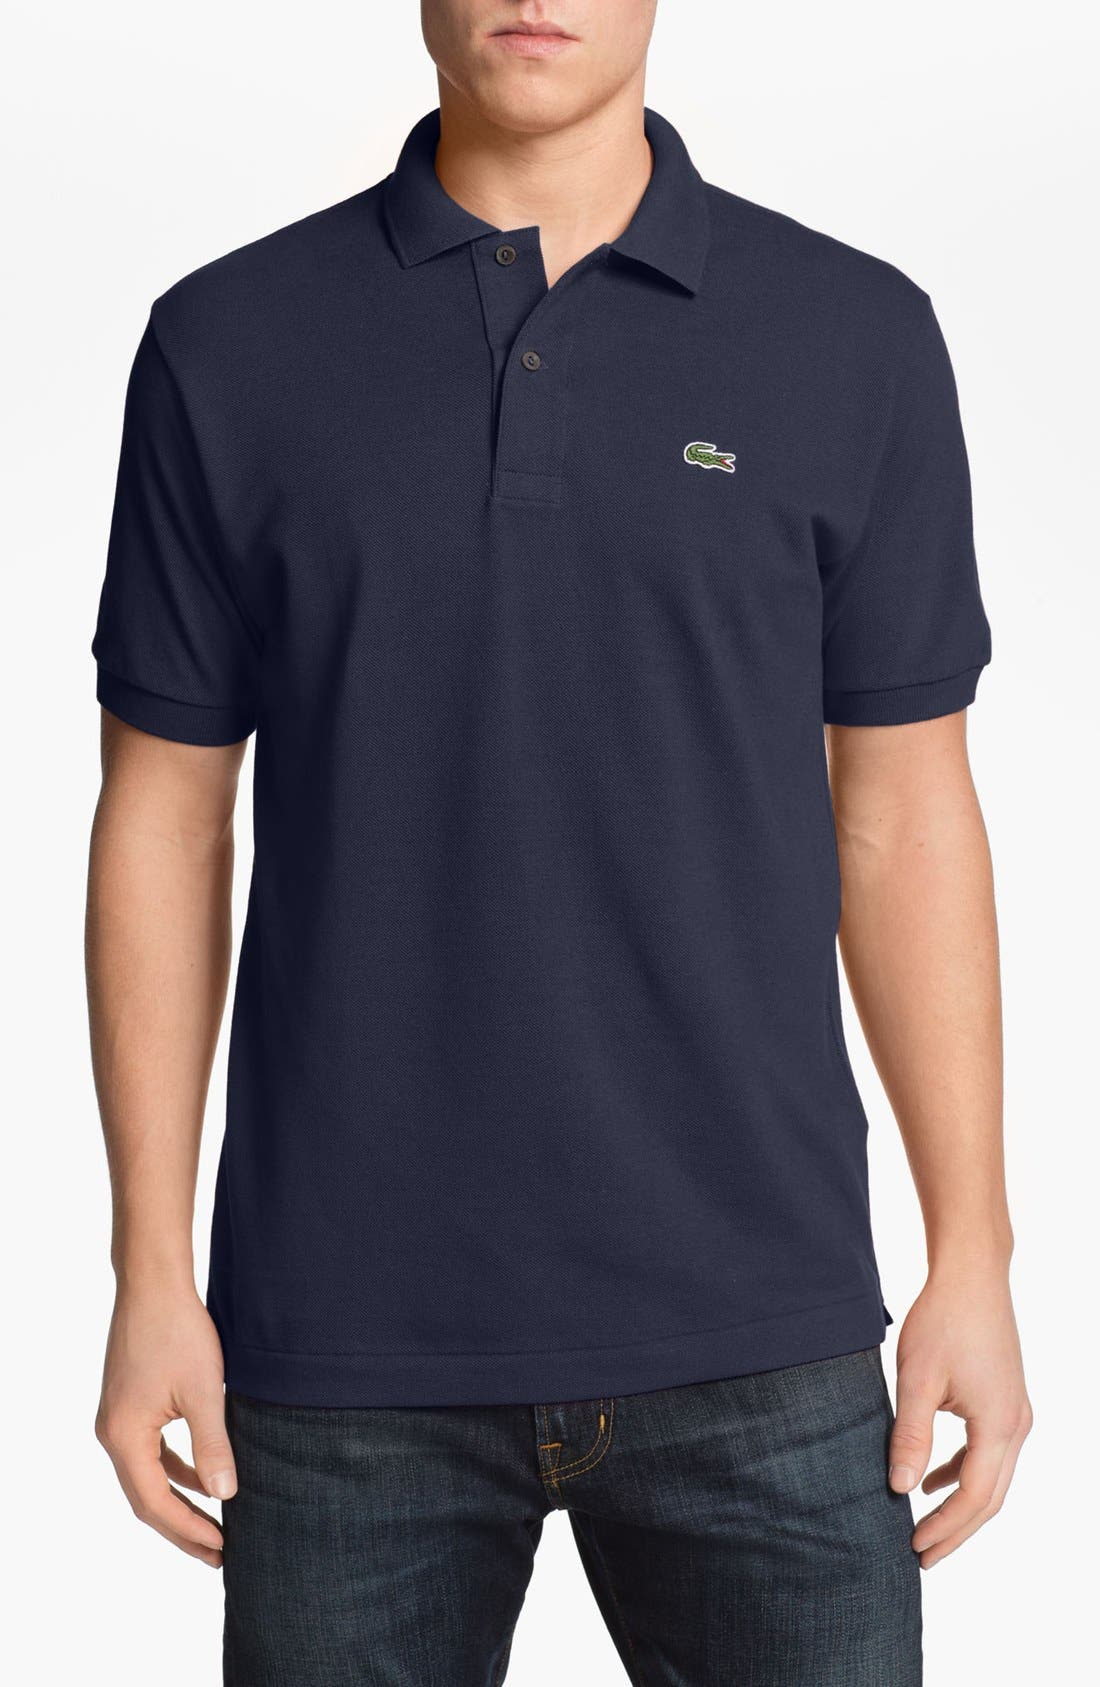 Alternate Image 1 Selected - Lacoste Classic Piqué Polo (Tall)